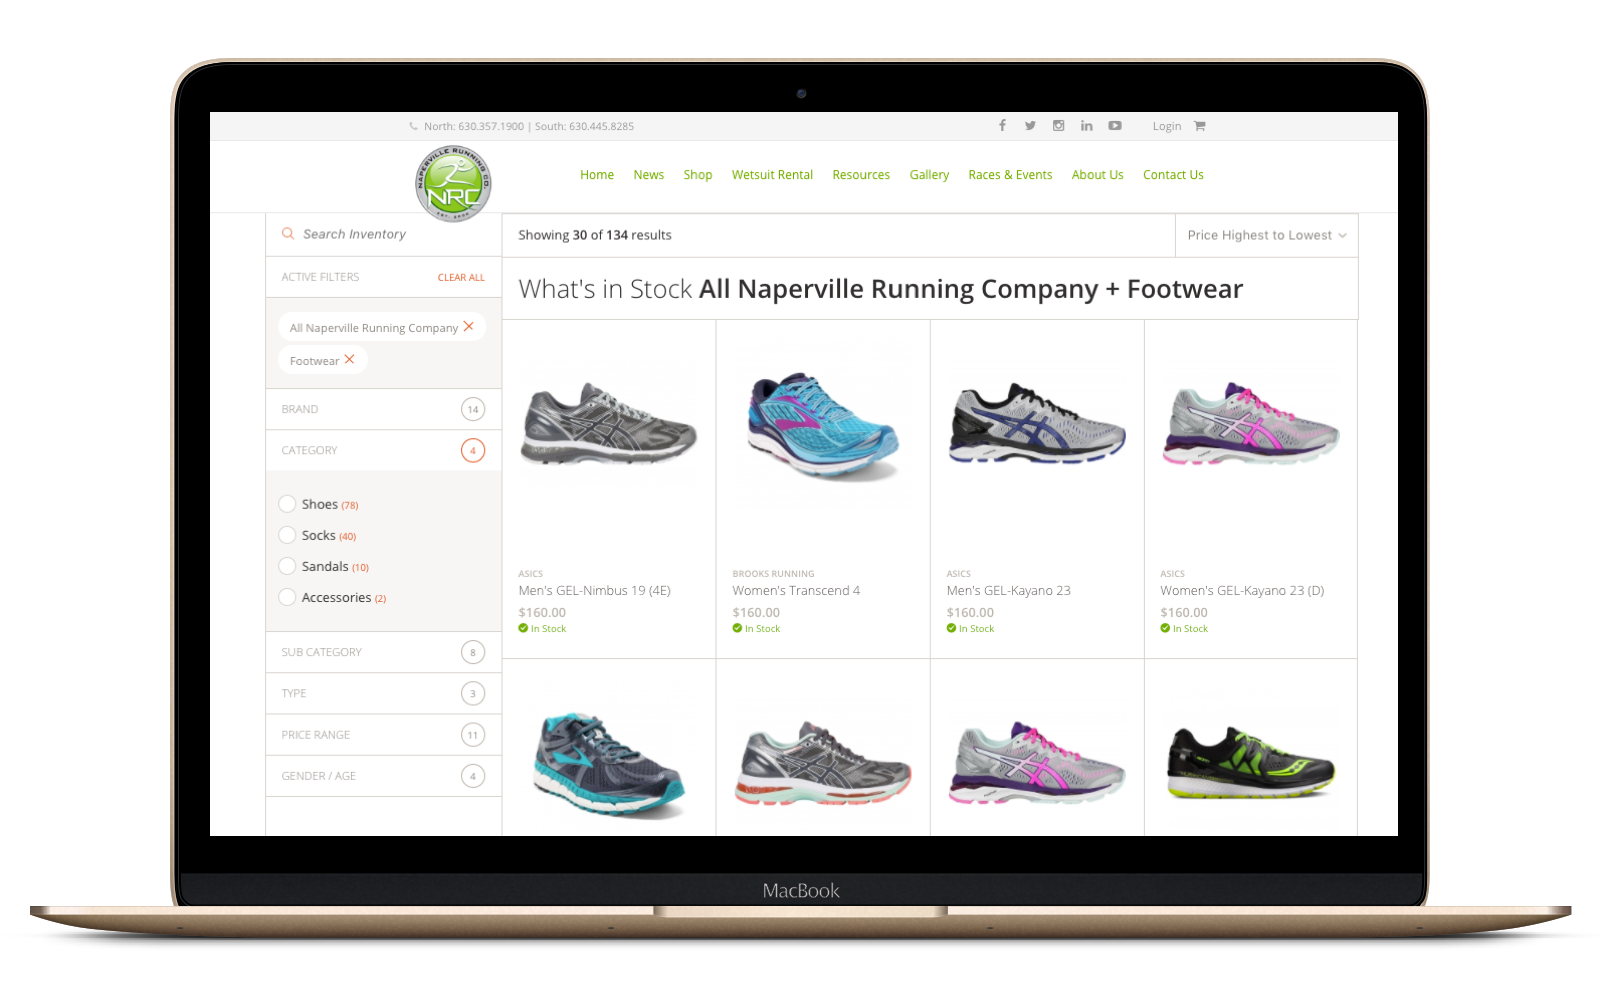 Naperville Running Company